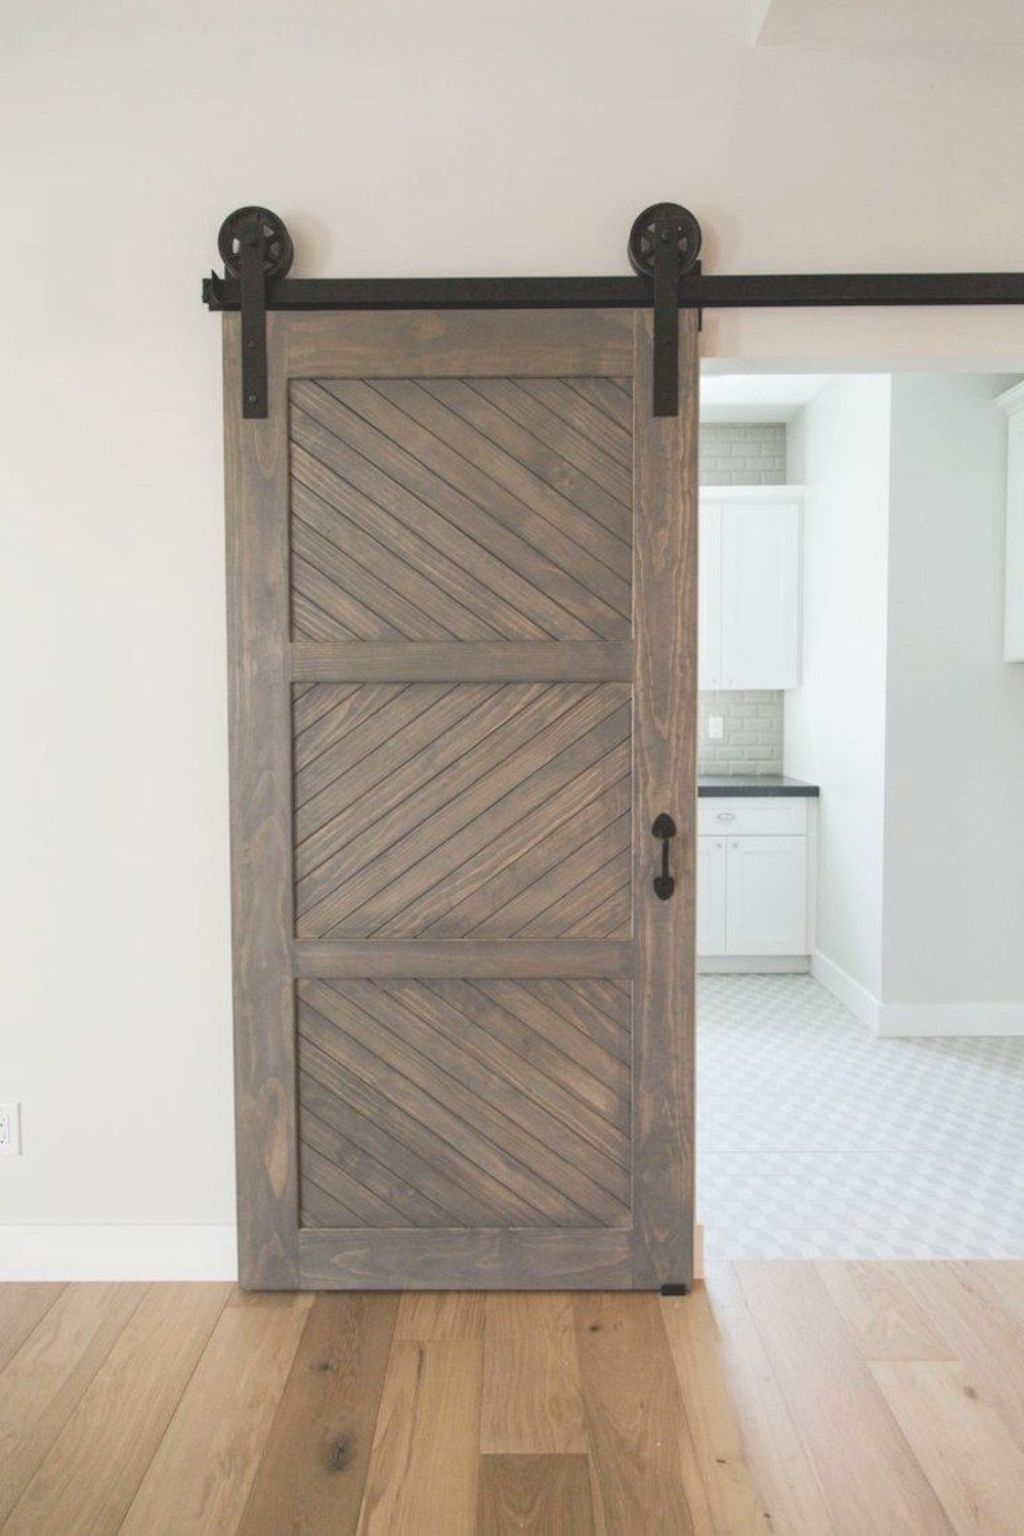 Barn style sliding doors applied as bedroom doors showing a rustic accent in the modern country homes Image 38